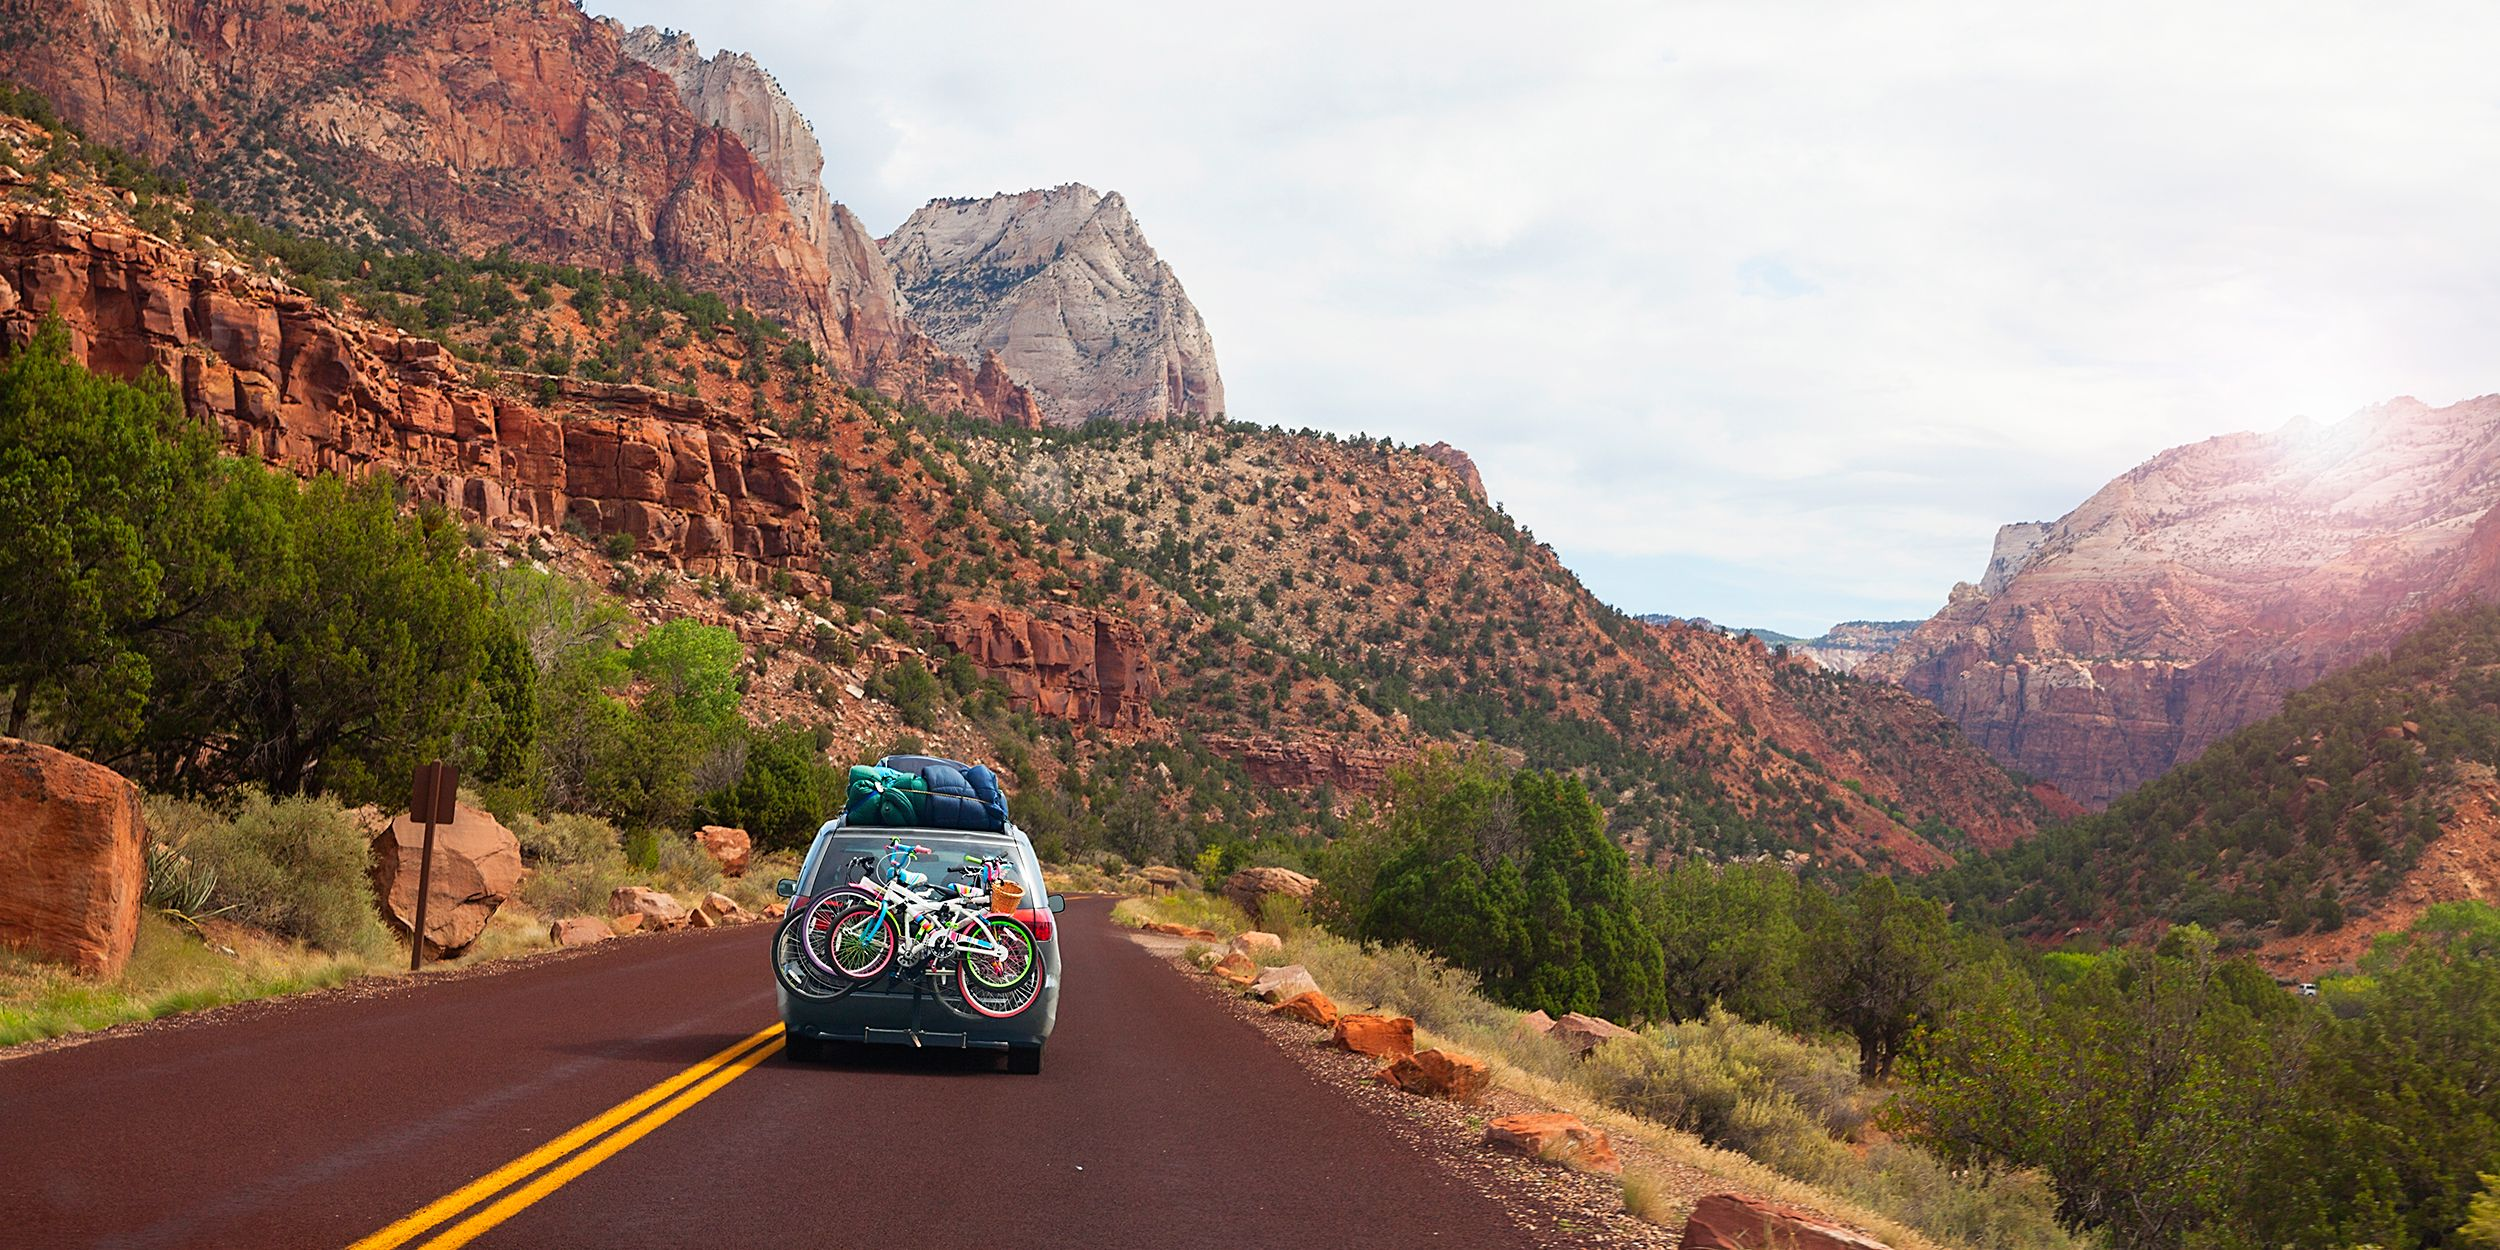 48 Best Road Trip Destinations with Kids - Family Road Trip Ideas